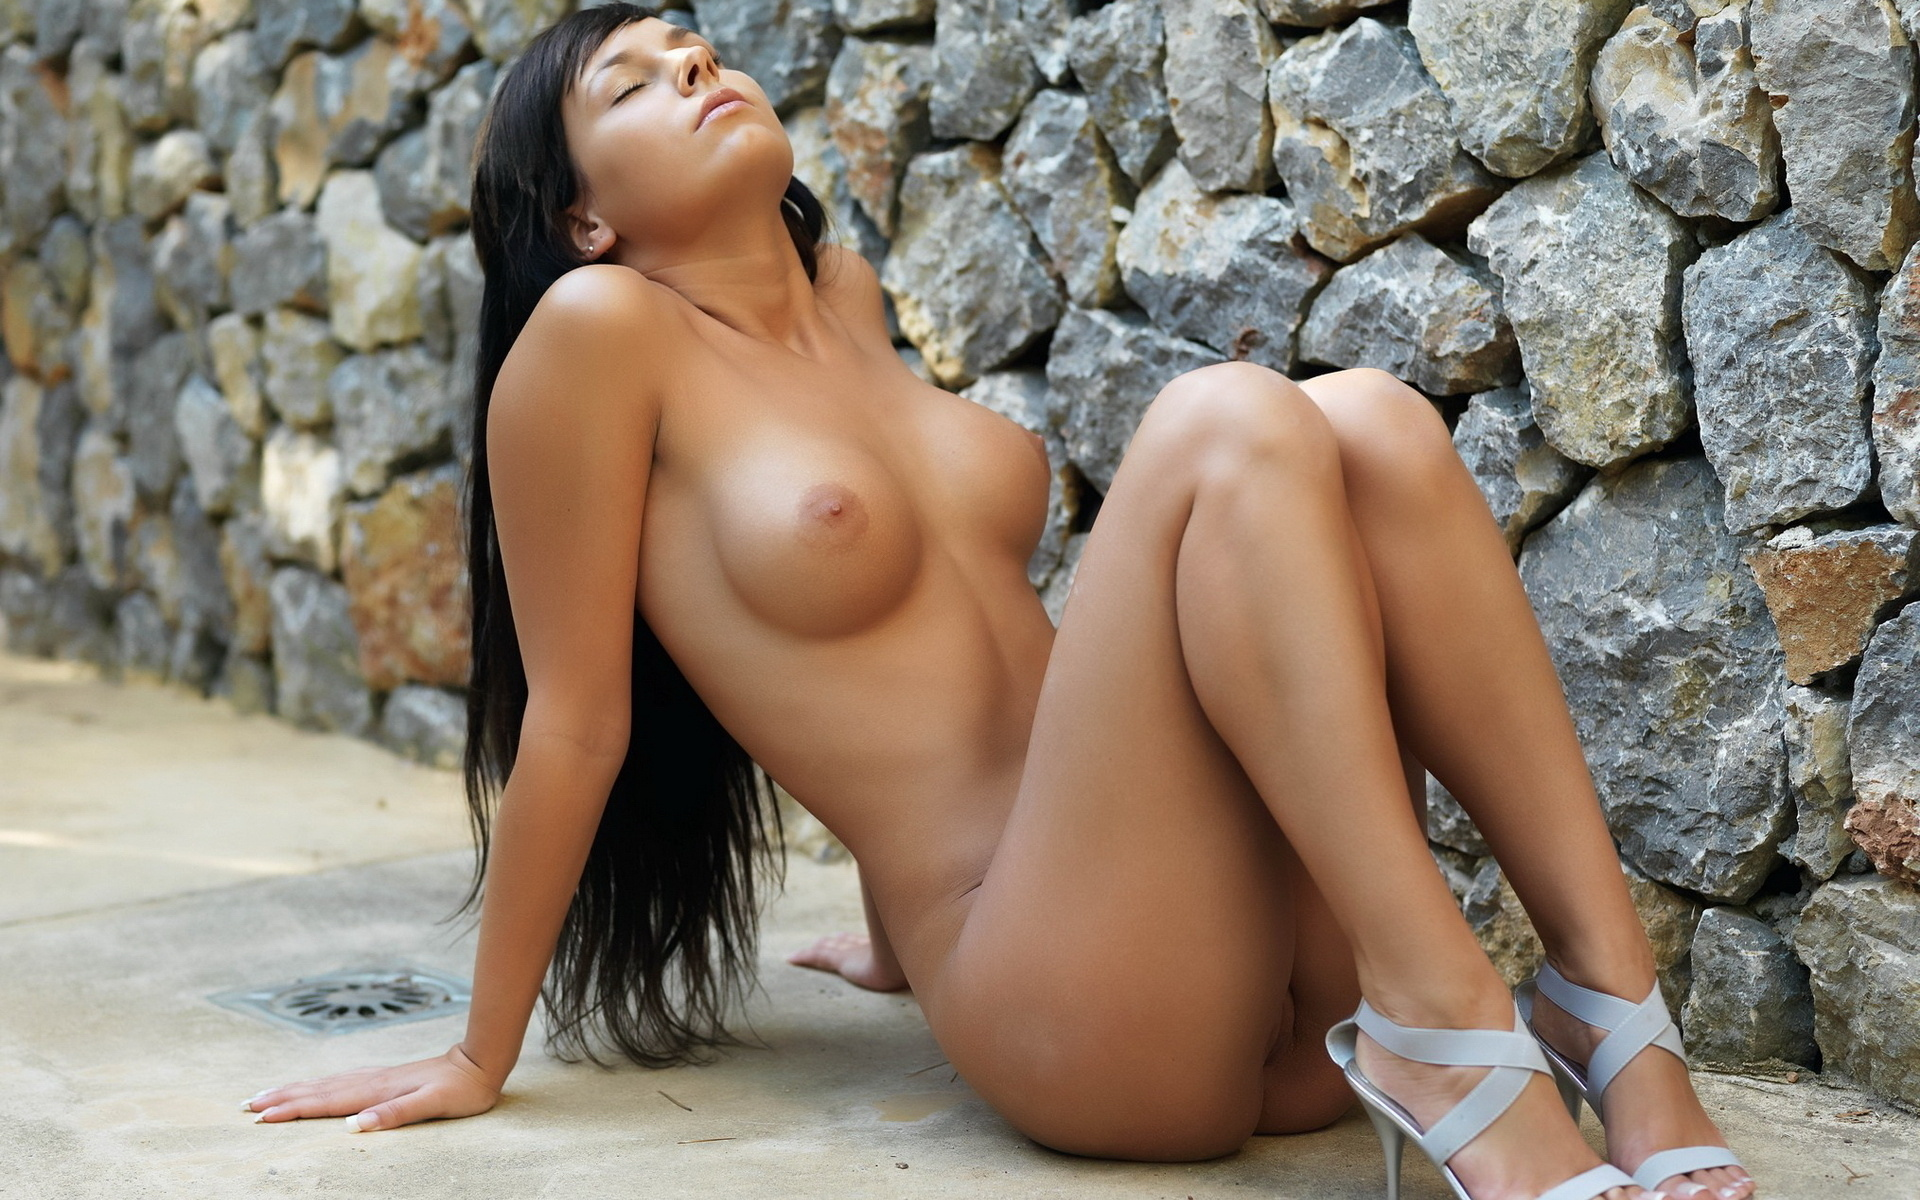 girl-video-hot-girls-completely-naked-soto-fake-nudes